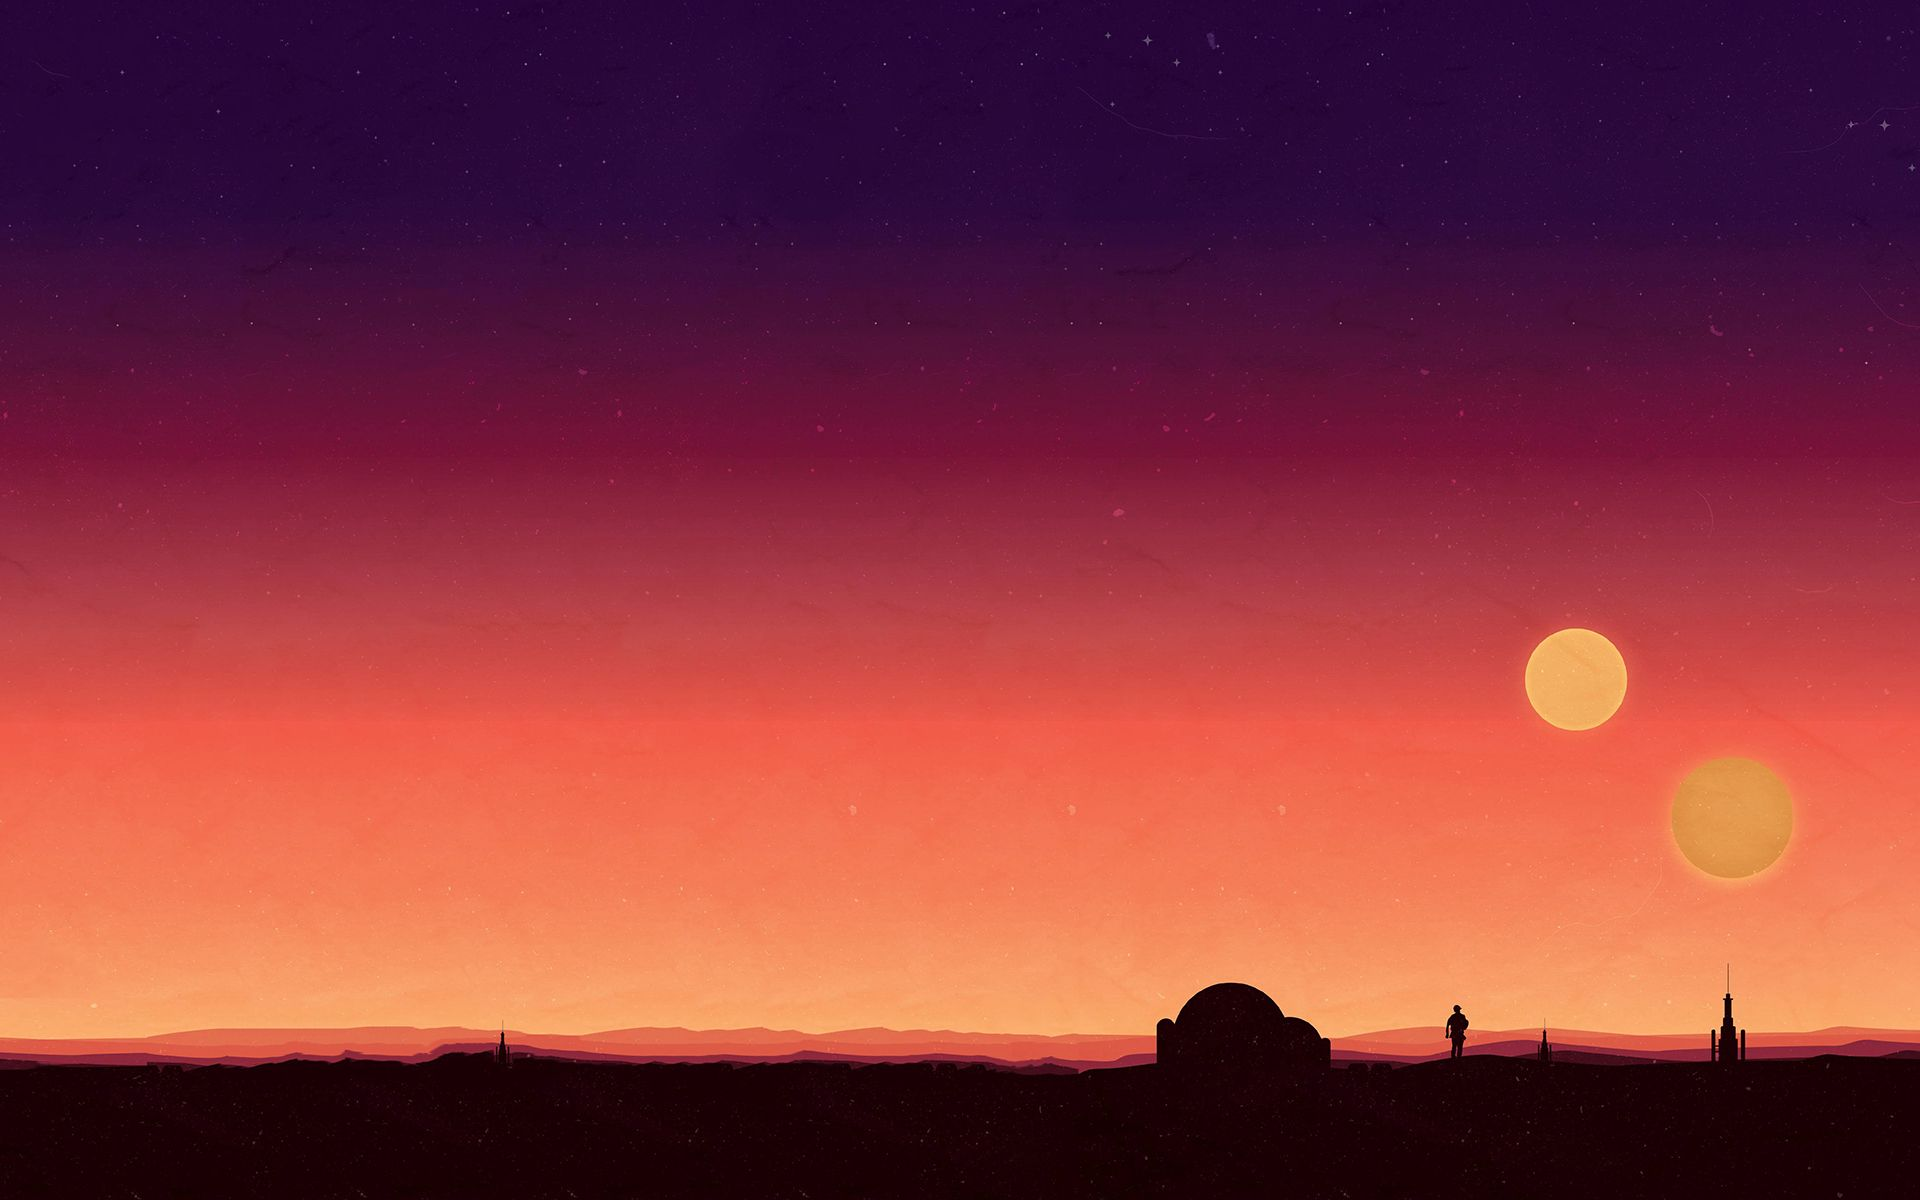 Request Does Anyone Have A Hd Desktop Wallpaper Of The Binary Star Wars Painting Star Wars Background Star Wars Wallpaper